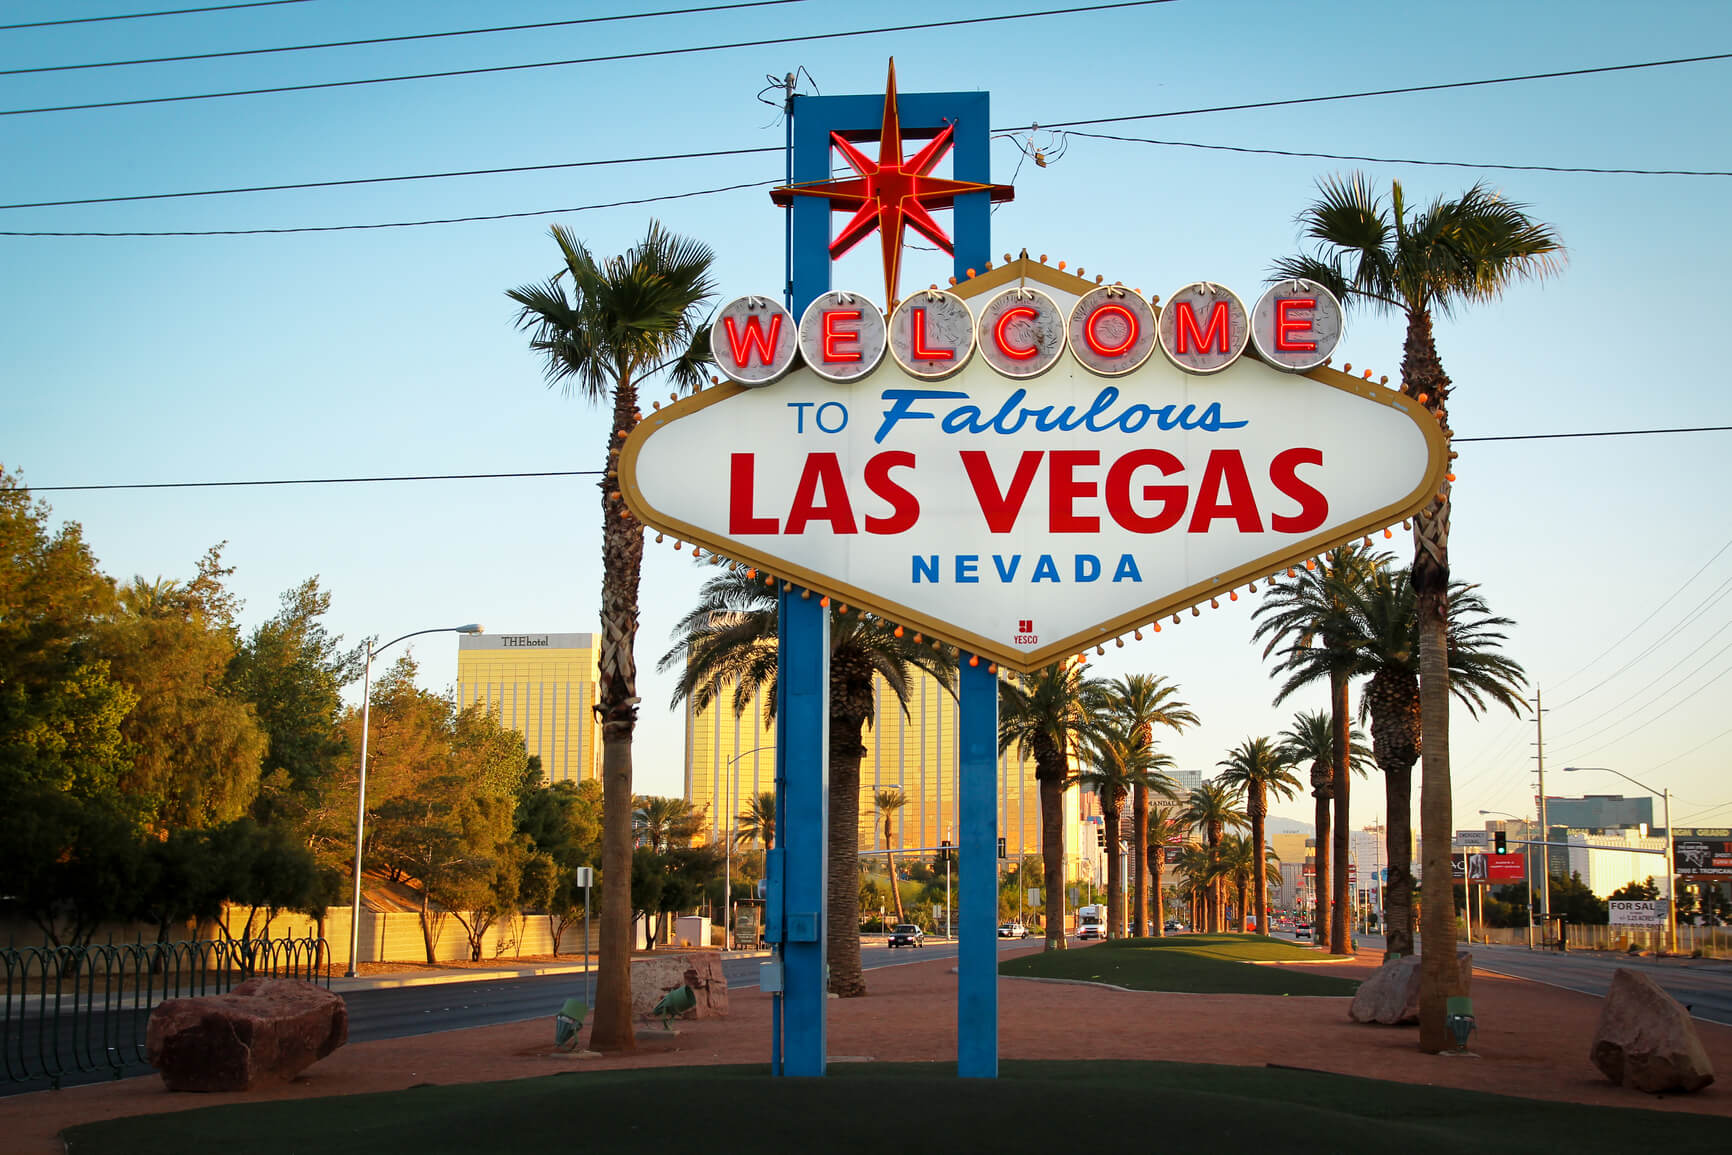 Non-stop from New York to Las Vegas (& vice versa) for only $212 roundtrip